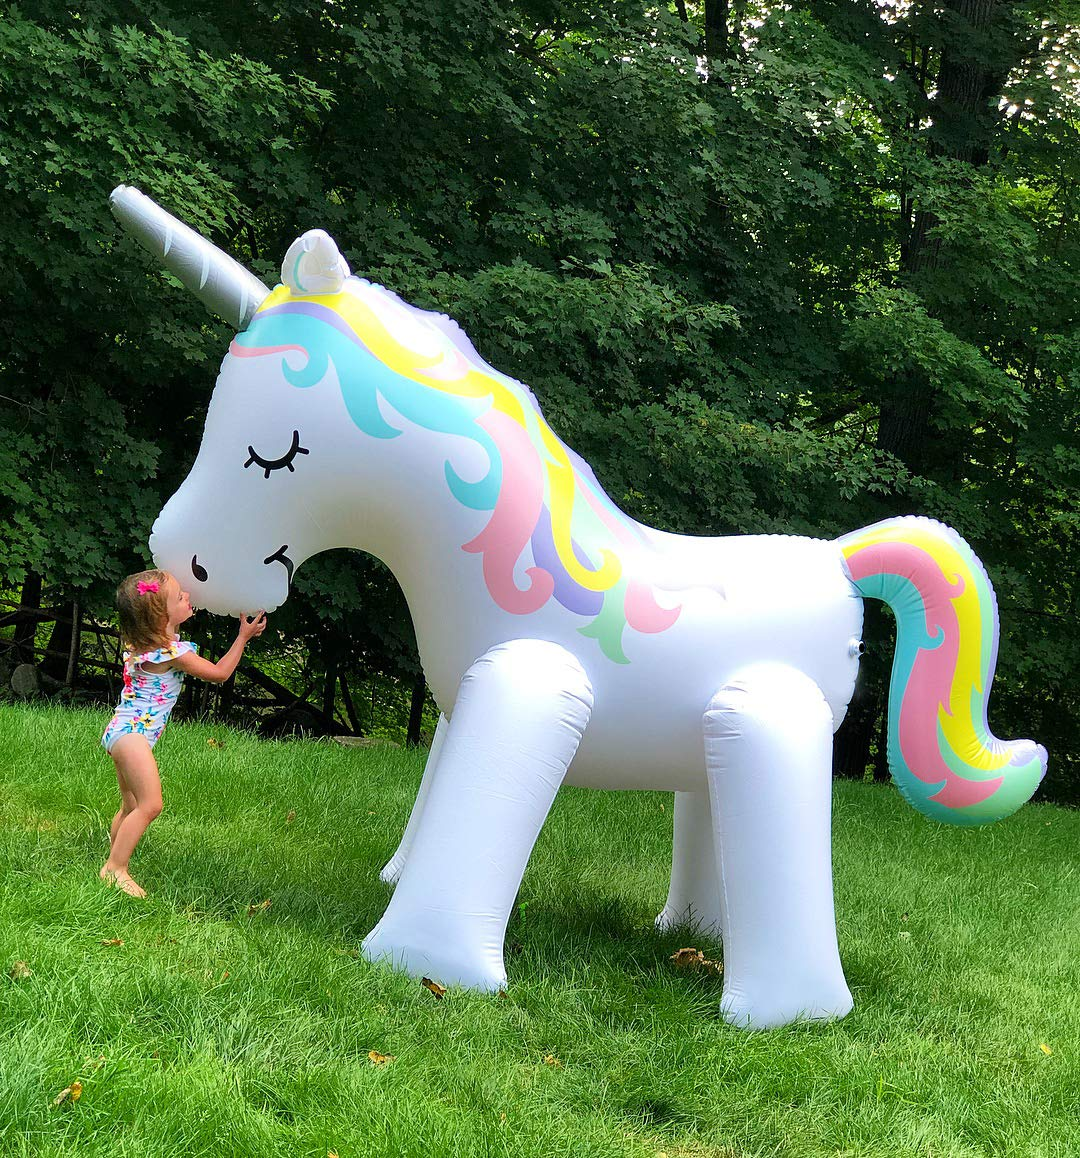 LANGXUN Ginormous Inflatable Unicorn Yard Sprinkler Toy for Kids, Perfect for Unicorn Party Supplies & Outdoor Summer… 8